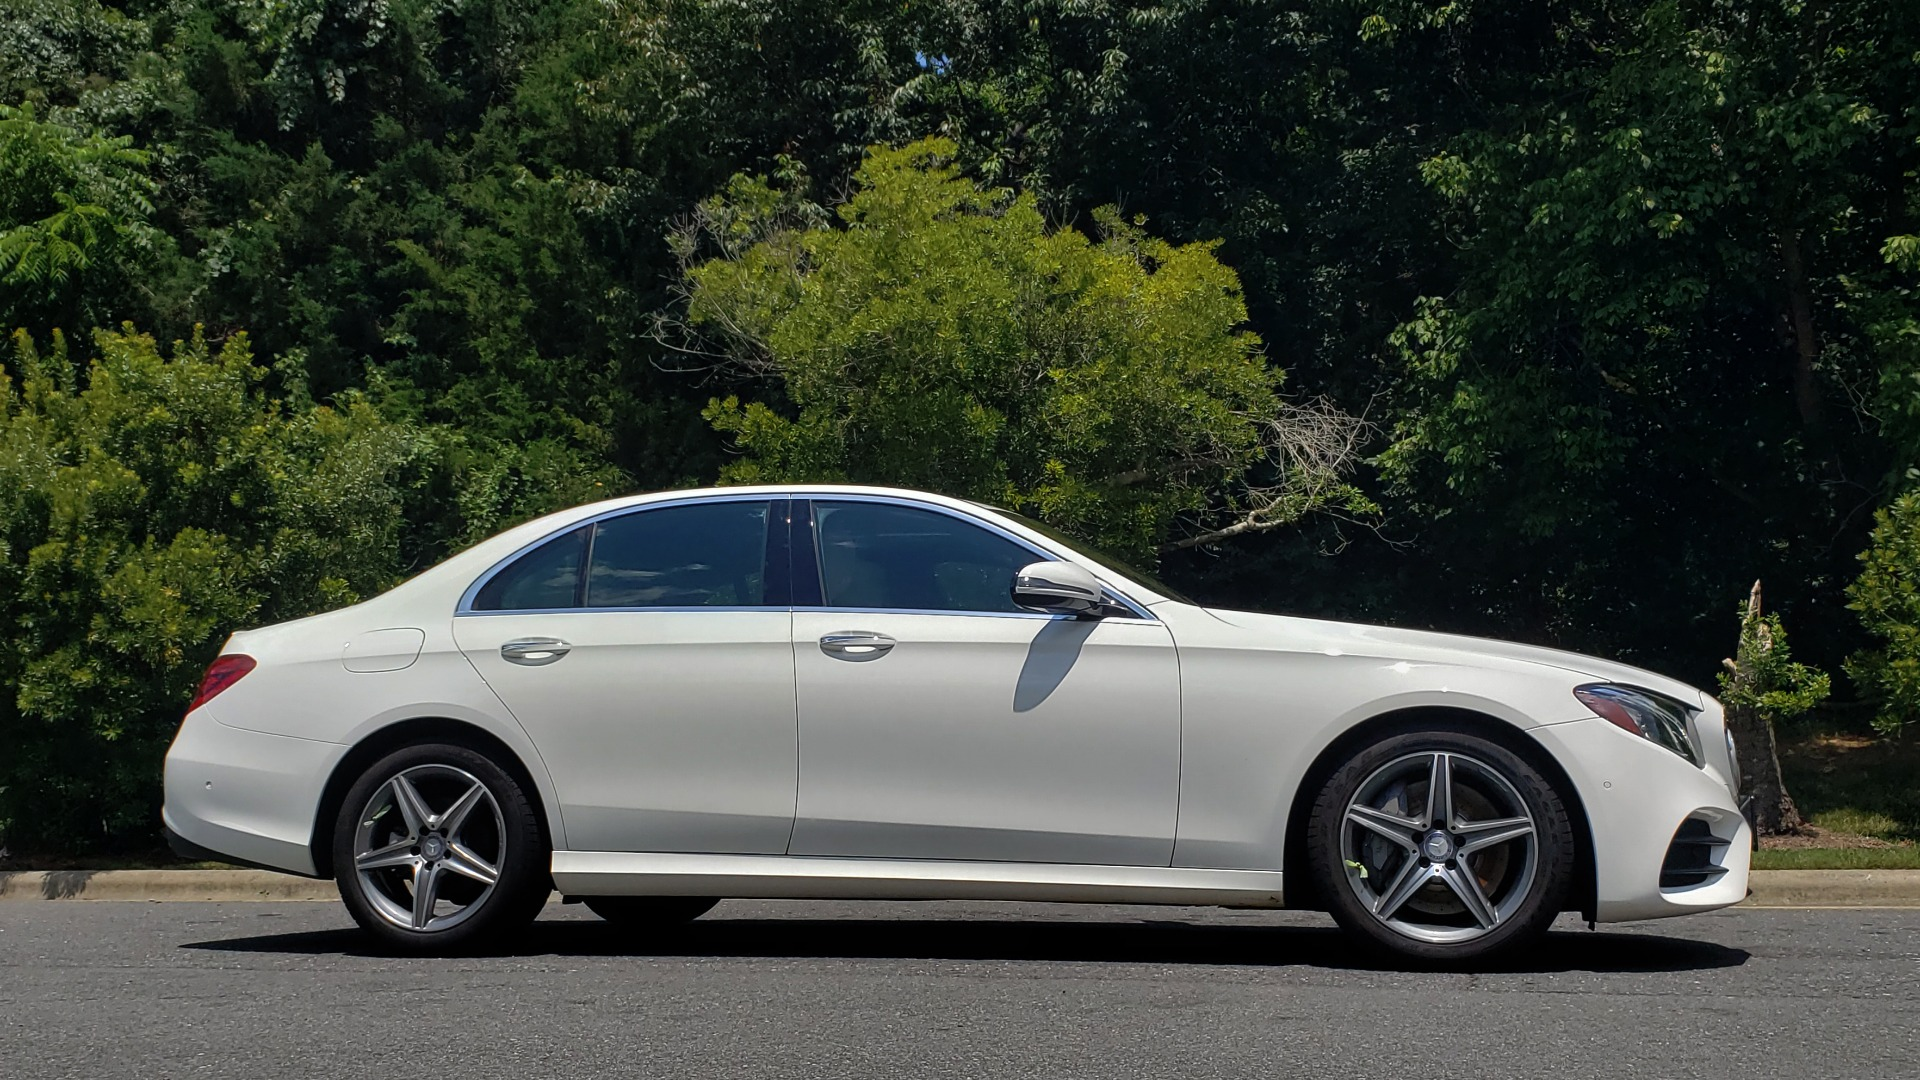 Used 2017 Mercedes-Benz E-CLASS E 300 PREMIUM / SPORT / NAV / SUNROOF / HTD STS / BSM / REARVIEW for sale $27,995 at Formula Imports in Charlotte NC 28227 5